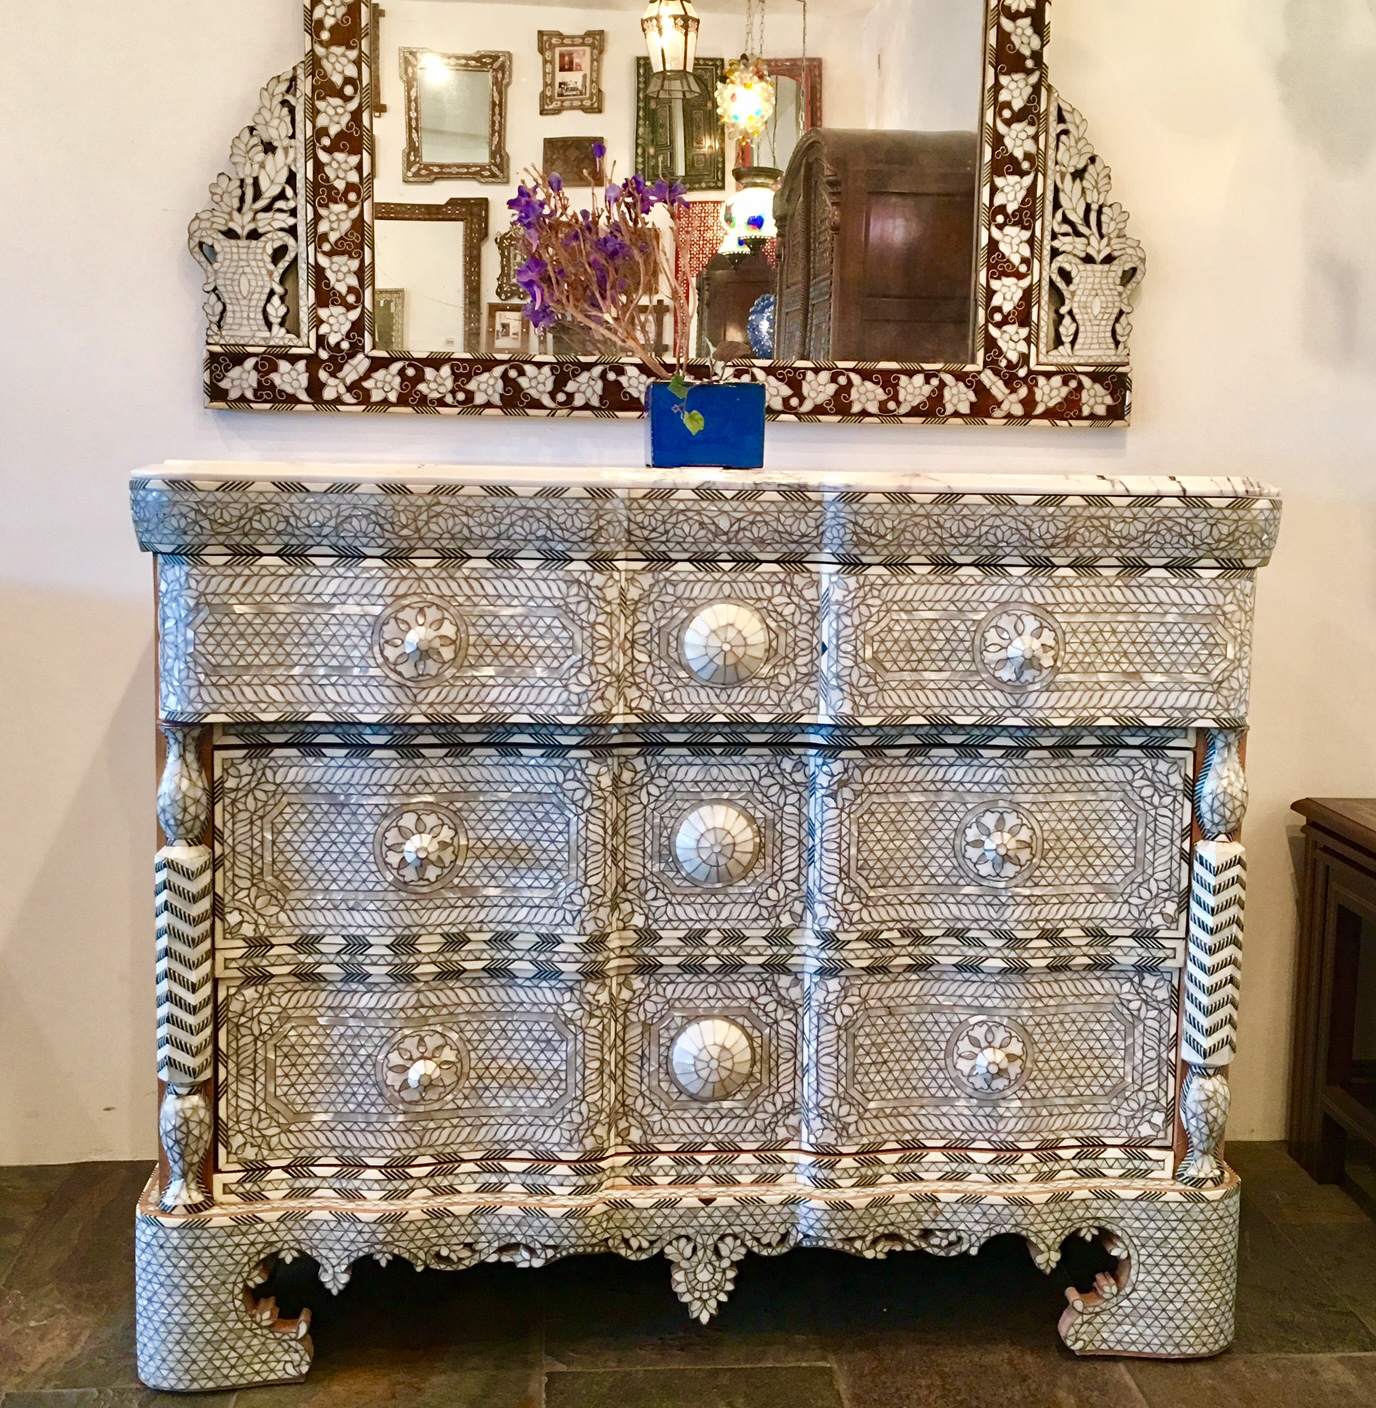 Syrian mother of pearl inlay chest